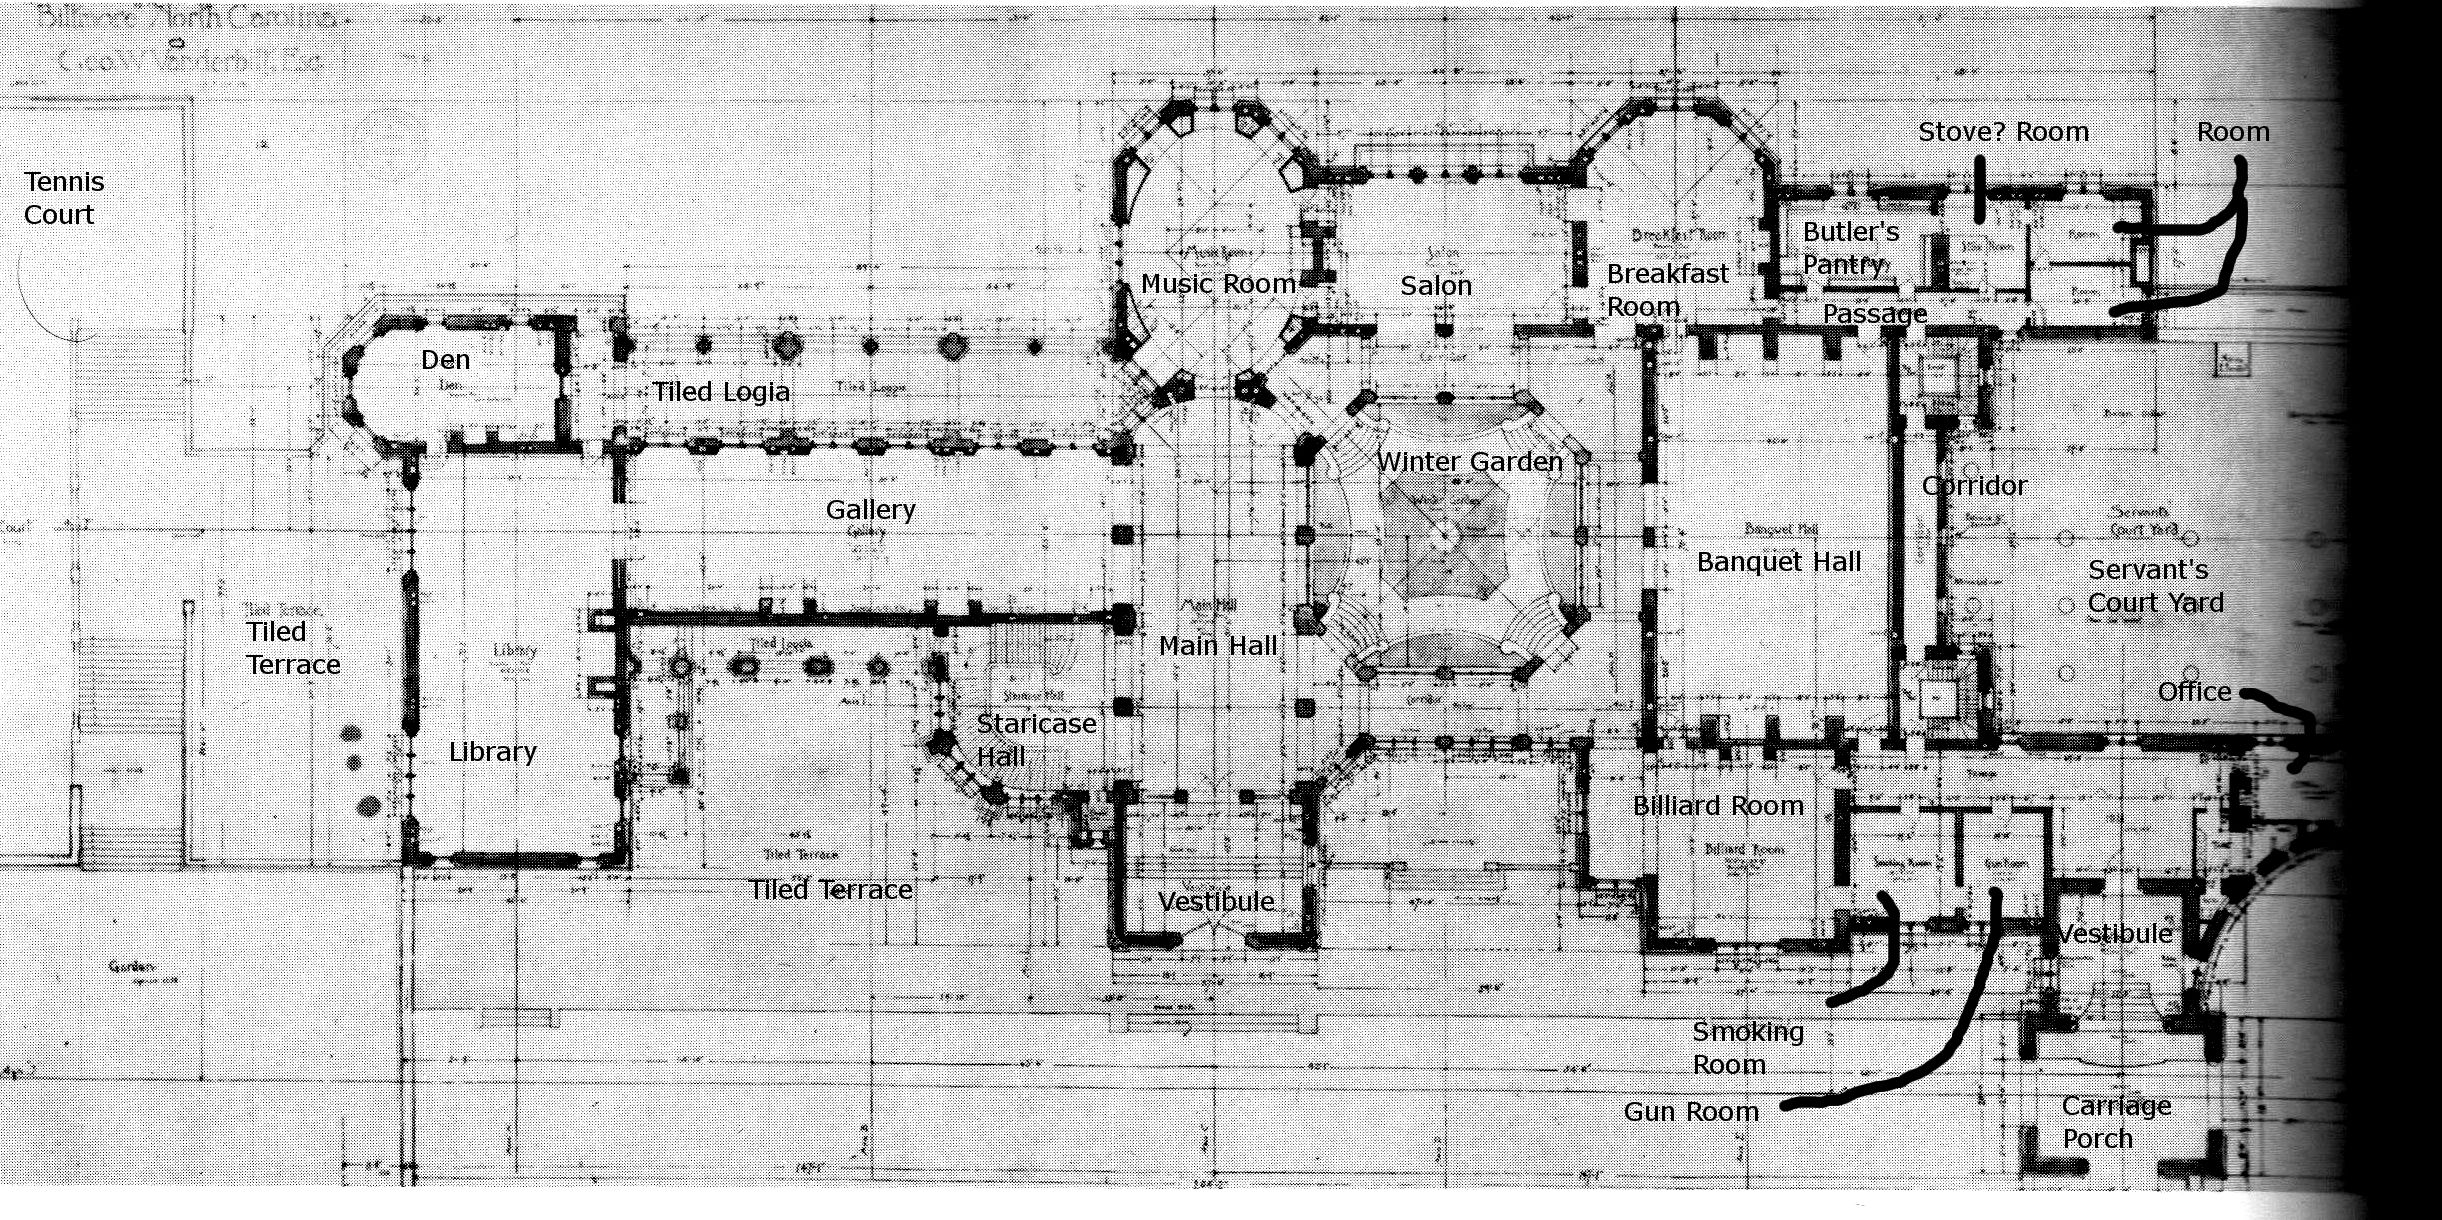 Biltmore Ground floor plan with details  The Gilded Age